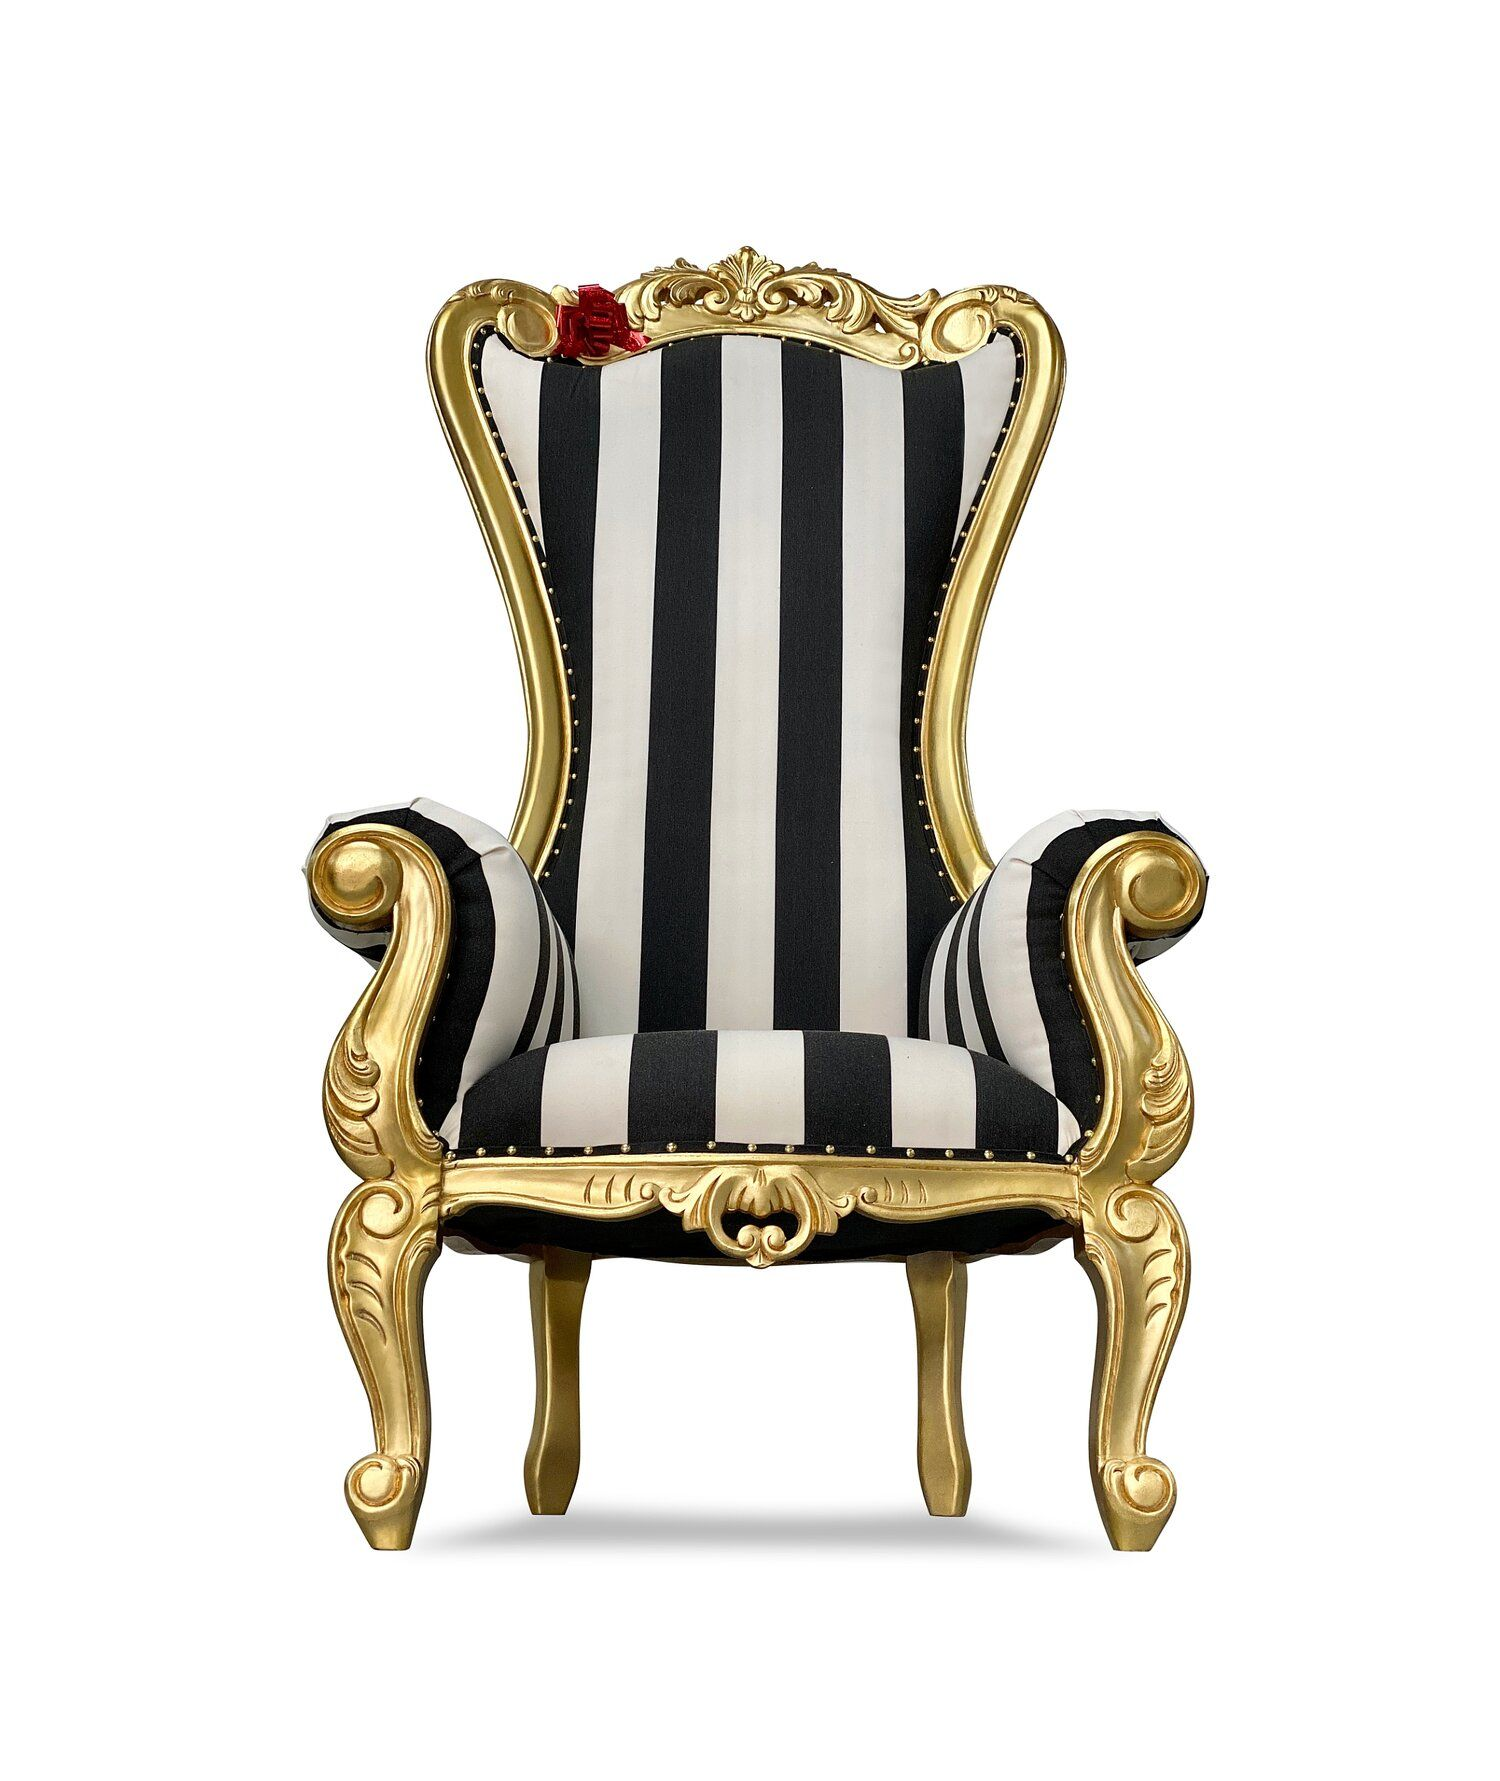 70 Isabella Ii Throne Gold Pinstripe Chiseled Perfections In 2020 Throne Throne Chair Fabric Seat